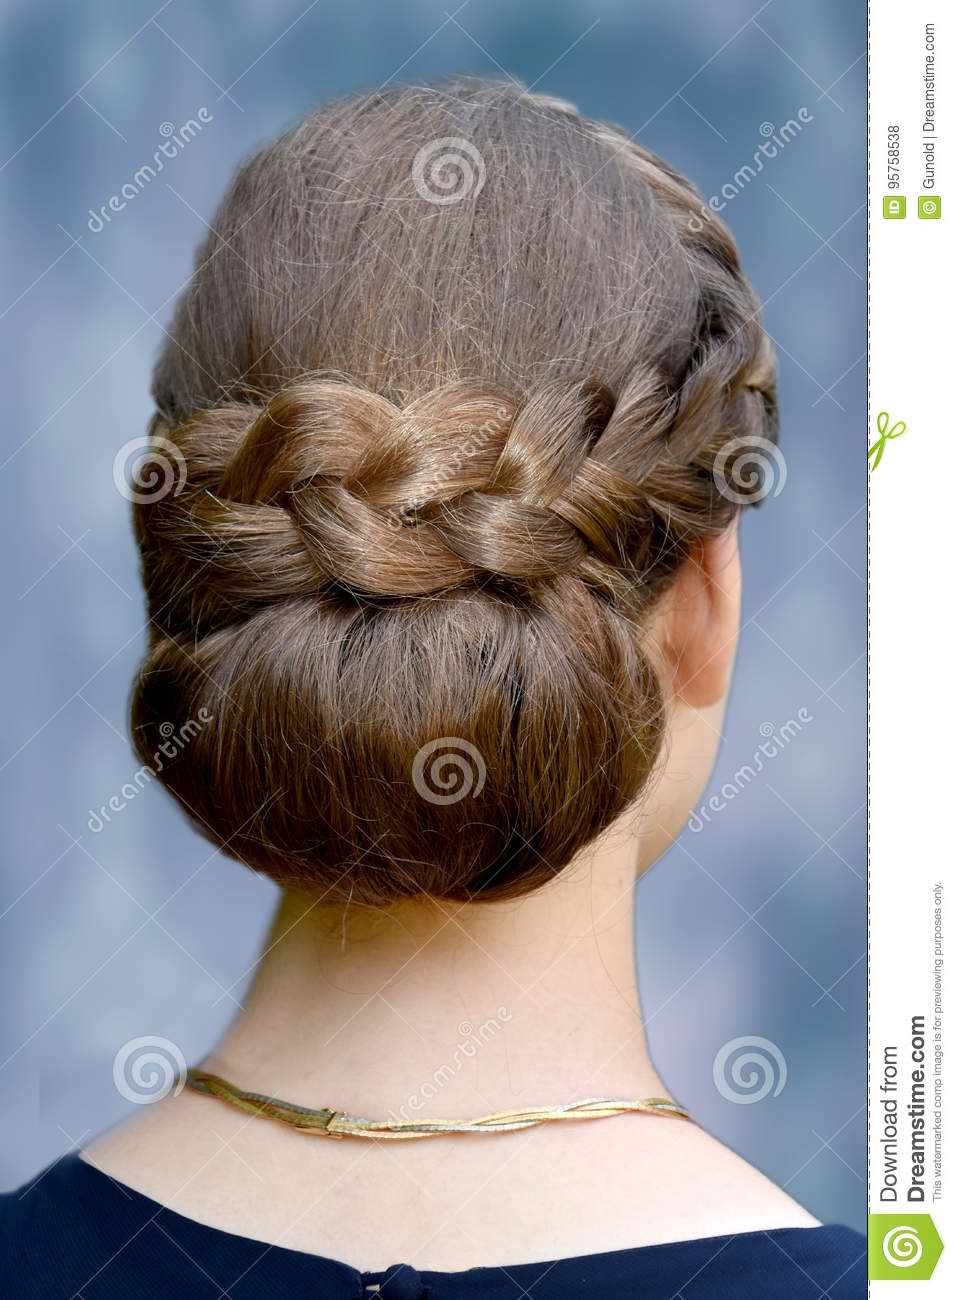 Special Hairstyle Braided Hair Stock Photo Image Of Braid Decent 95758538